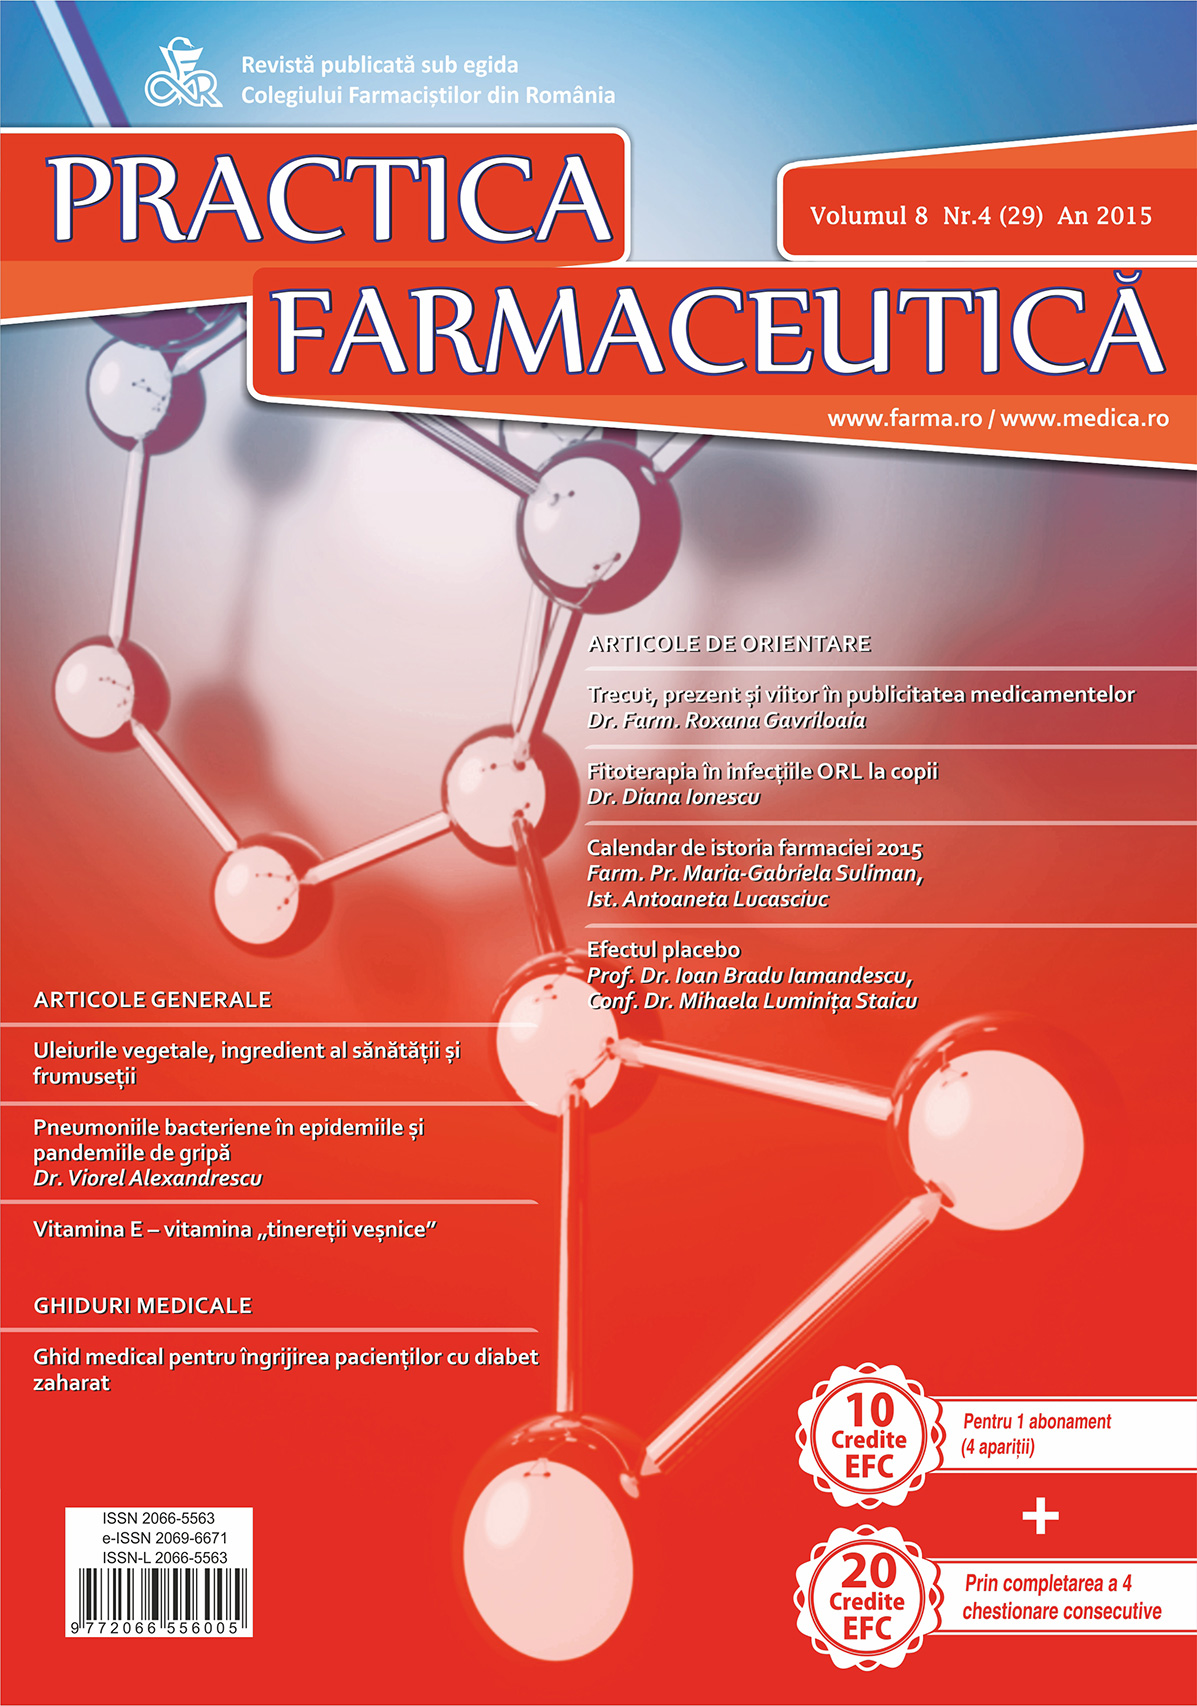 Revista Practica Farmaceutica, Vol. VIII, No. 4 (29), 2015